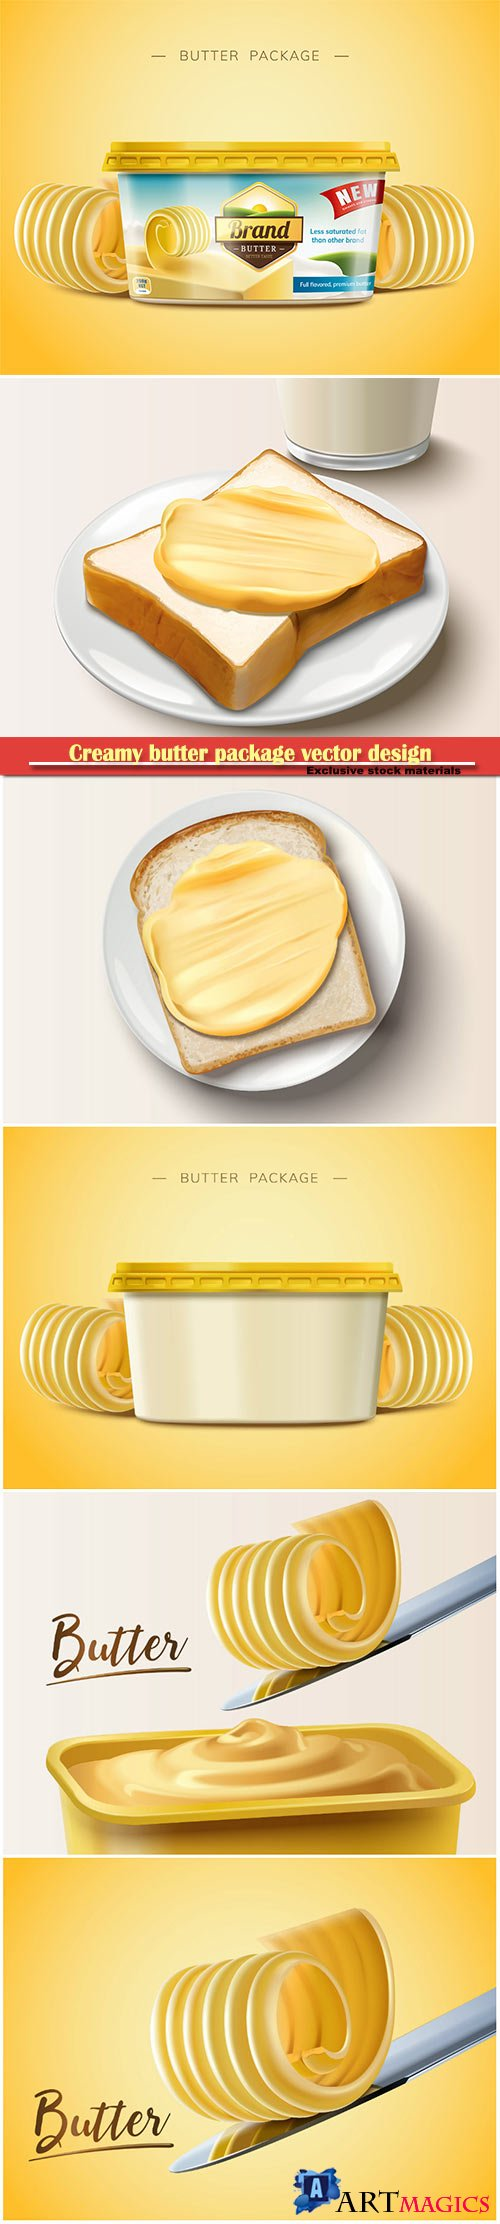 Creamy butter package vector design